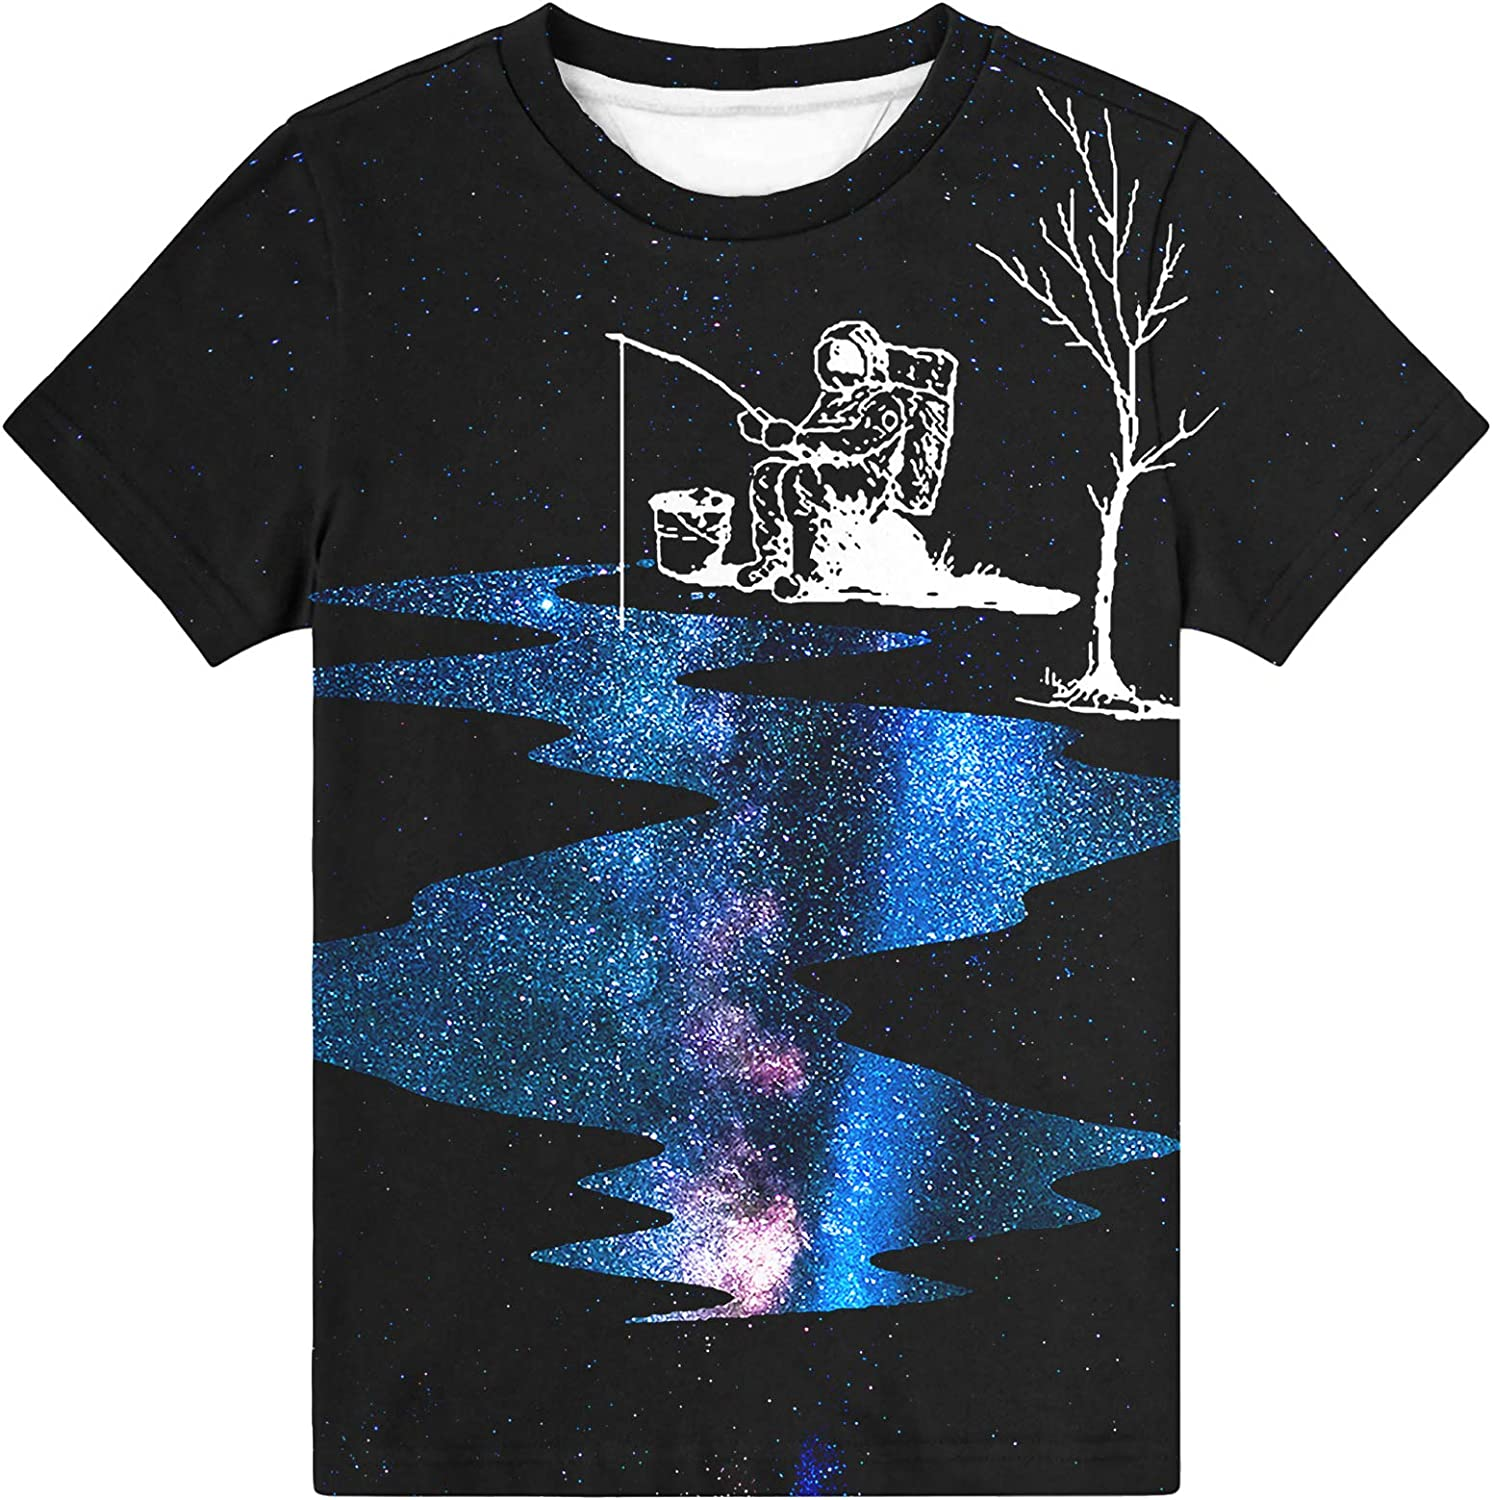 Hgvoetty Boys Girls 3D Shirts Casual Crewneck T-Shirts Unisex Short Sleeve Graphic Tops Tees 6-16 Years